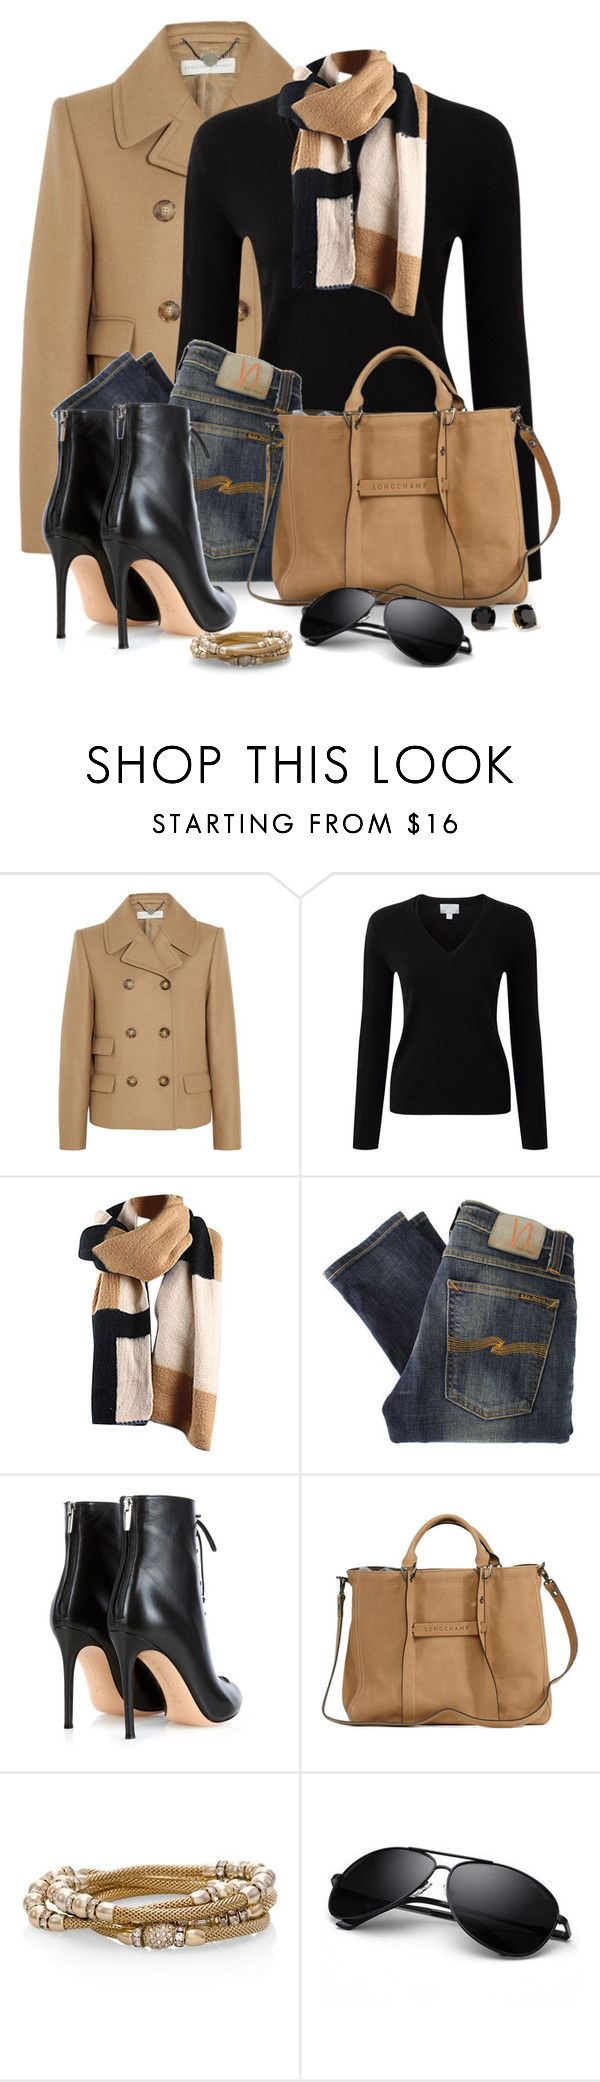 """""""Black Cashmere Sweater"""" by snickersmother ❤ liked on Polyvore featuring STELLA McCARTNEY, Pure Collection, RGB, Nudie Jeans Co., Gianvito Rossi, Longchamp, White House Black Market and Kate Spade"""